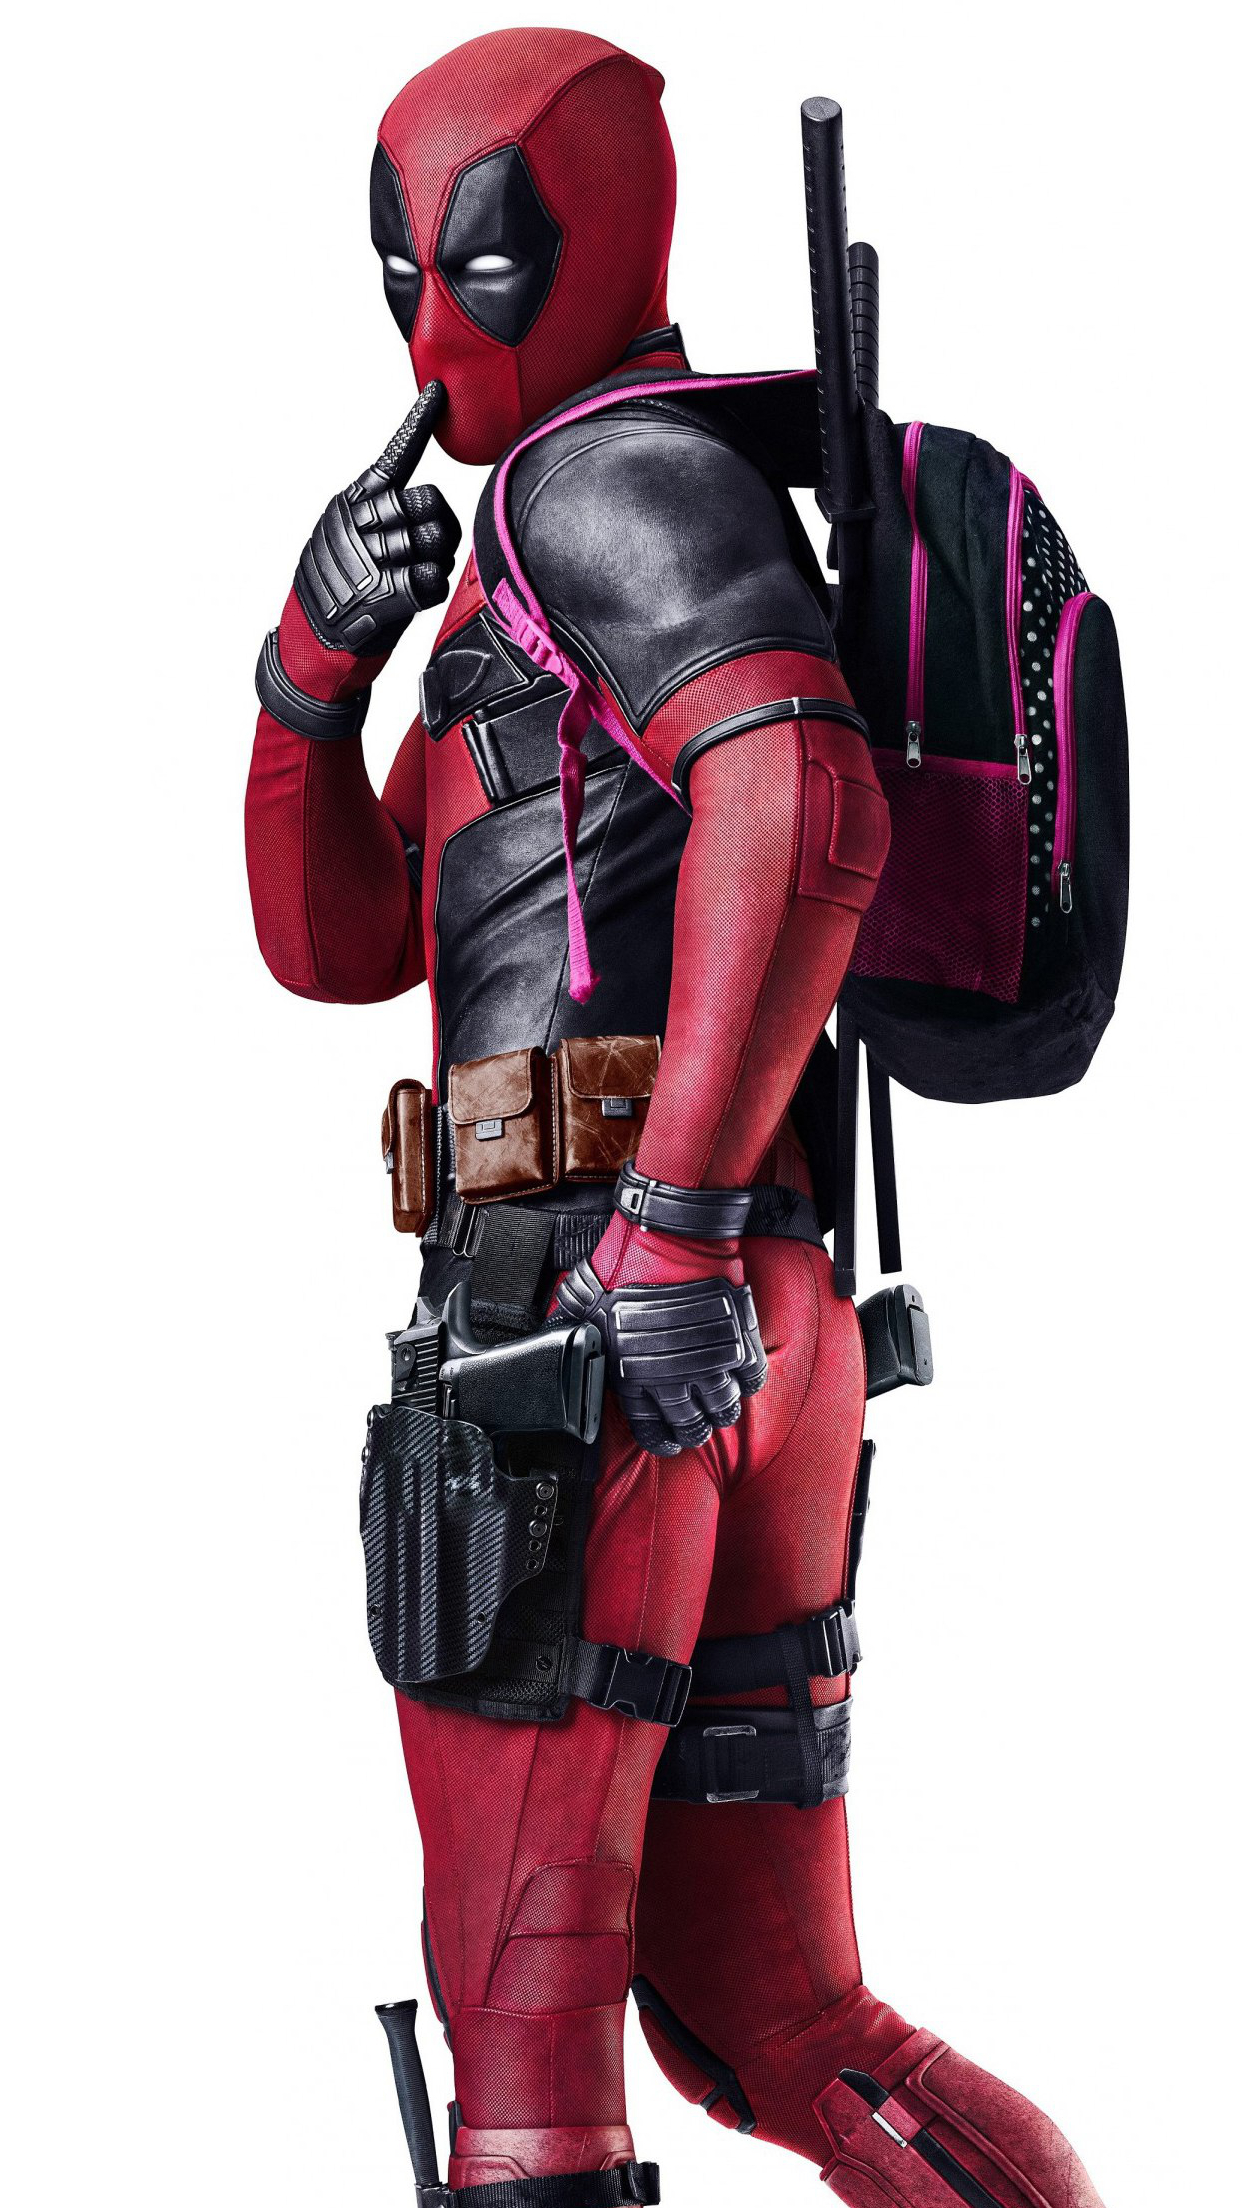 50 Deadpool Wallpaper Iphone 6 On Wallpapersafari